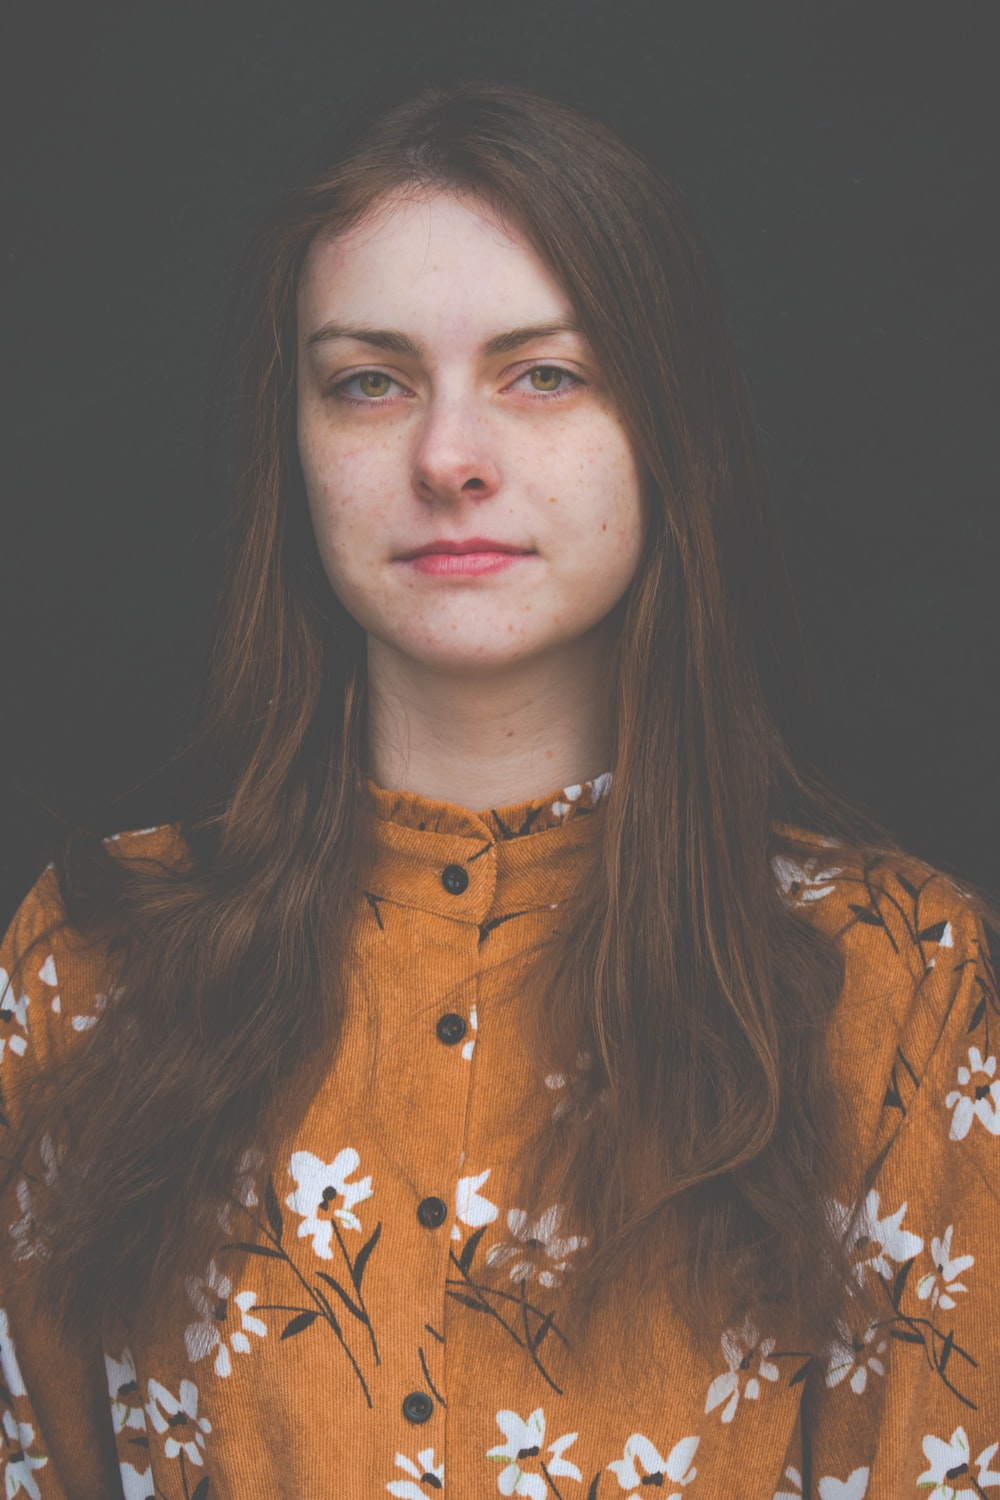 woman in brown,white and black floral blouse